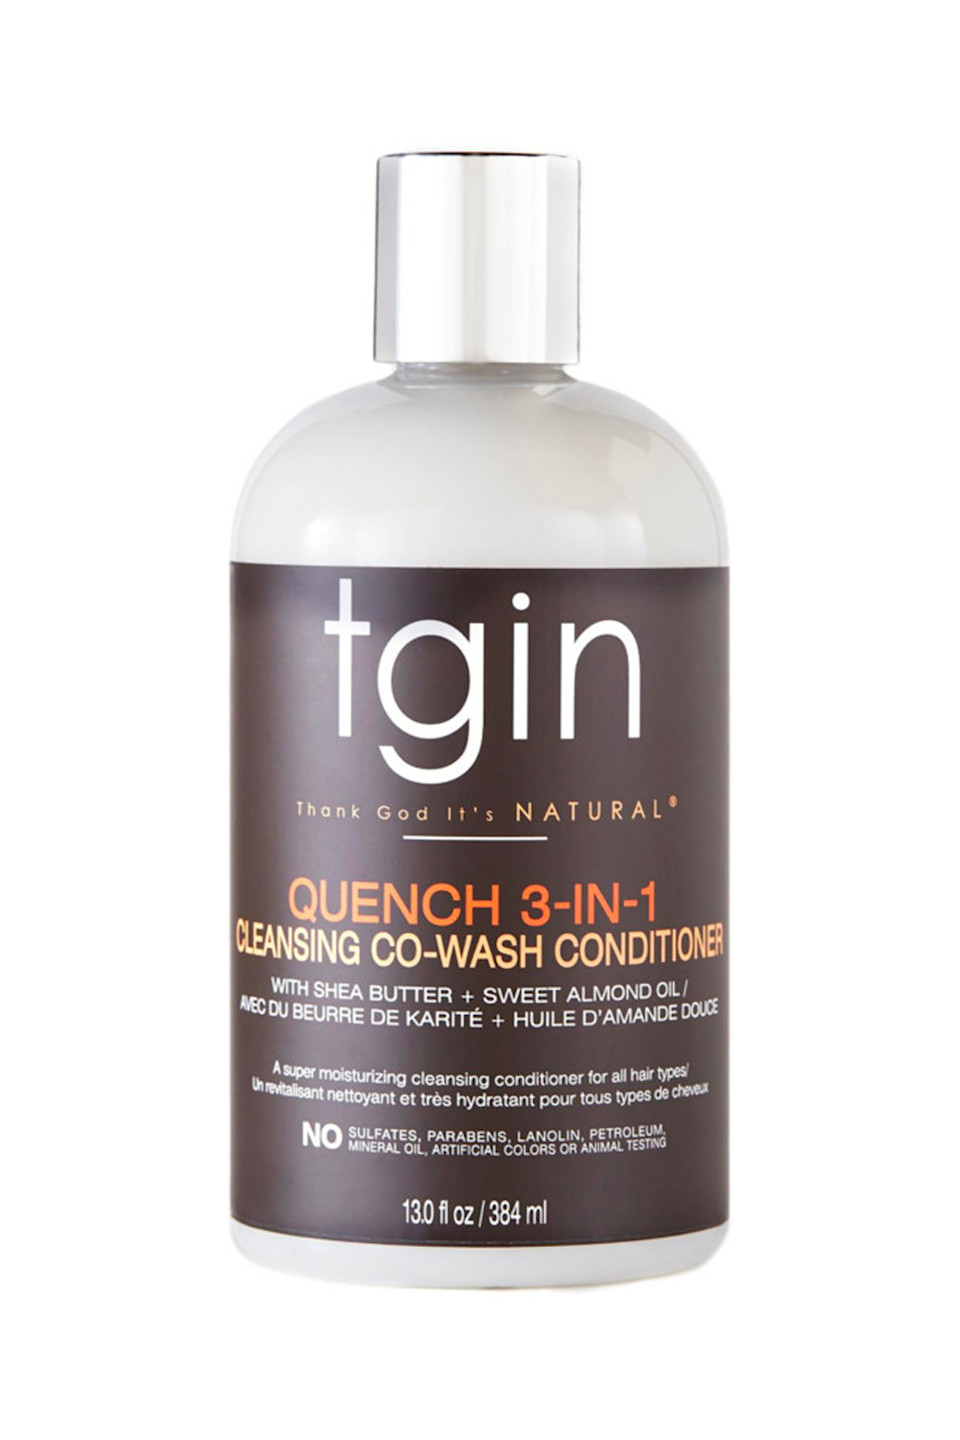 """<p><strong>tgin</strong></p><p>ulta.com</p><p><strong>$14.99</strong></p><p><a href=""""https://go.redirectingat.com?id=74968X1596630&url=https%3A%2F%2Fwww.ulta.com%2Fquench-3-in-1-cleansing-co-wash-conditioner-detangler-13oz%3FproductId%3Dpimprod2005392&sref=https%3A%2F%2Fwww.cosmopolitan.com%2Fstyle-beauty%2Fbeauty%2Fg36027428%2Fbest-detanglers-for-curly-hair%2F"""" rel=""""nofollow noopener"""" target=""""_blank"""" data-ylk=""""slk:Shop Now"""" class=""""link rapid-noclick-resp"""">Shop Now</a></p><p>The trick to detangling curls and coils without breakage? Start your detangling routine in the shower with this multitasking co-wash. The formula's shea butter and sweet almond <a href=""""https://www.cosmopolitan.com/style-beauty/beauty/g33444658/best-oils-for-curly-hair/"""" rel=""""nofollow noopener"""" target=""""_blank"""" data-ylk=""""slk:oil"""" class=""""link rapid-noclick-resp"""">oil</a> create the perfect amount of slip so you can <strong>gently detangle <em>as</em> you cleanse</strong>. Just don't forget to follow with your favorite conditioner, k?</p>"""